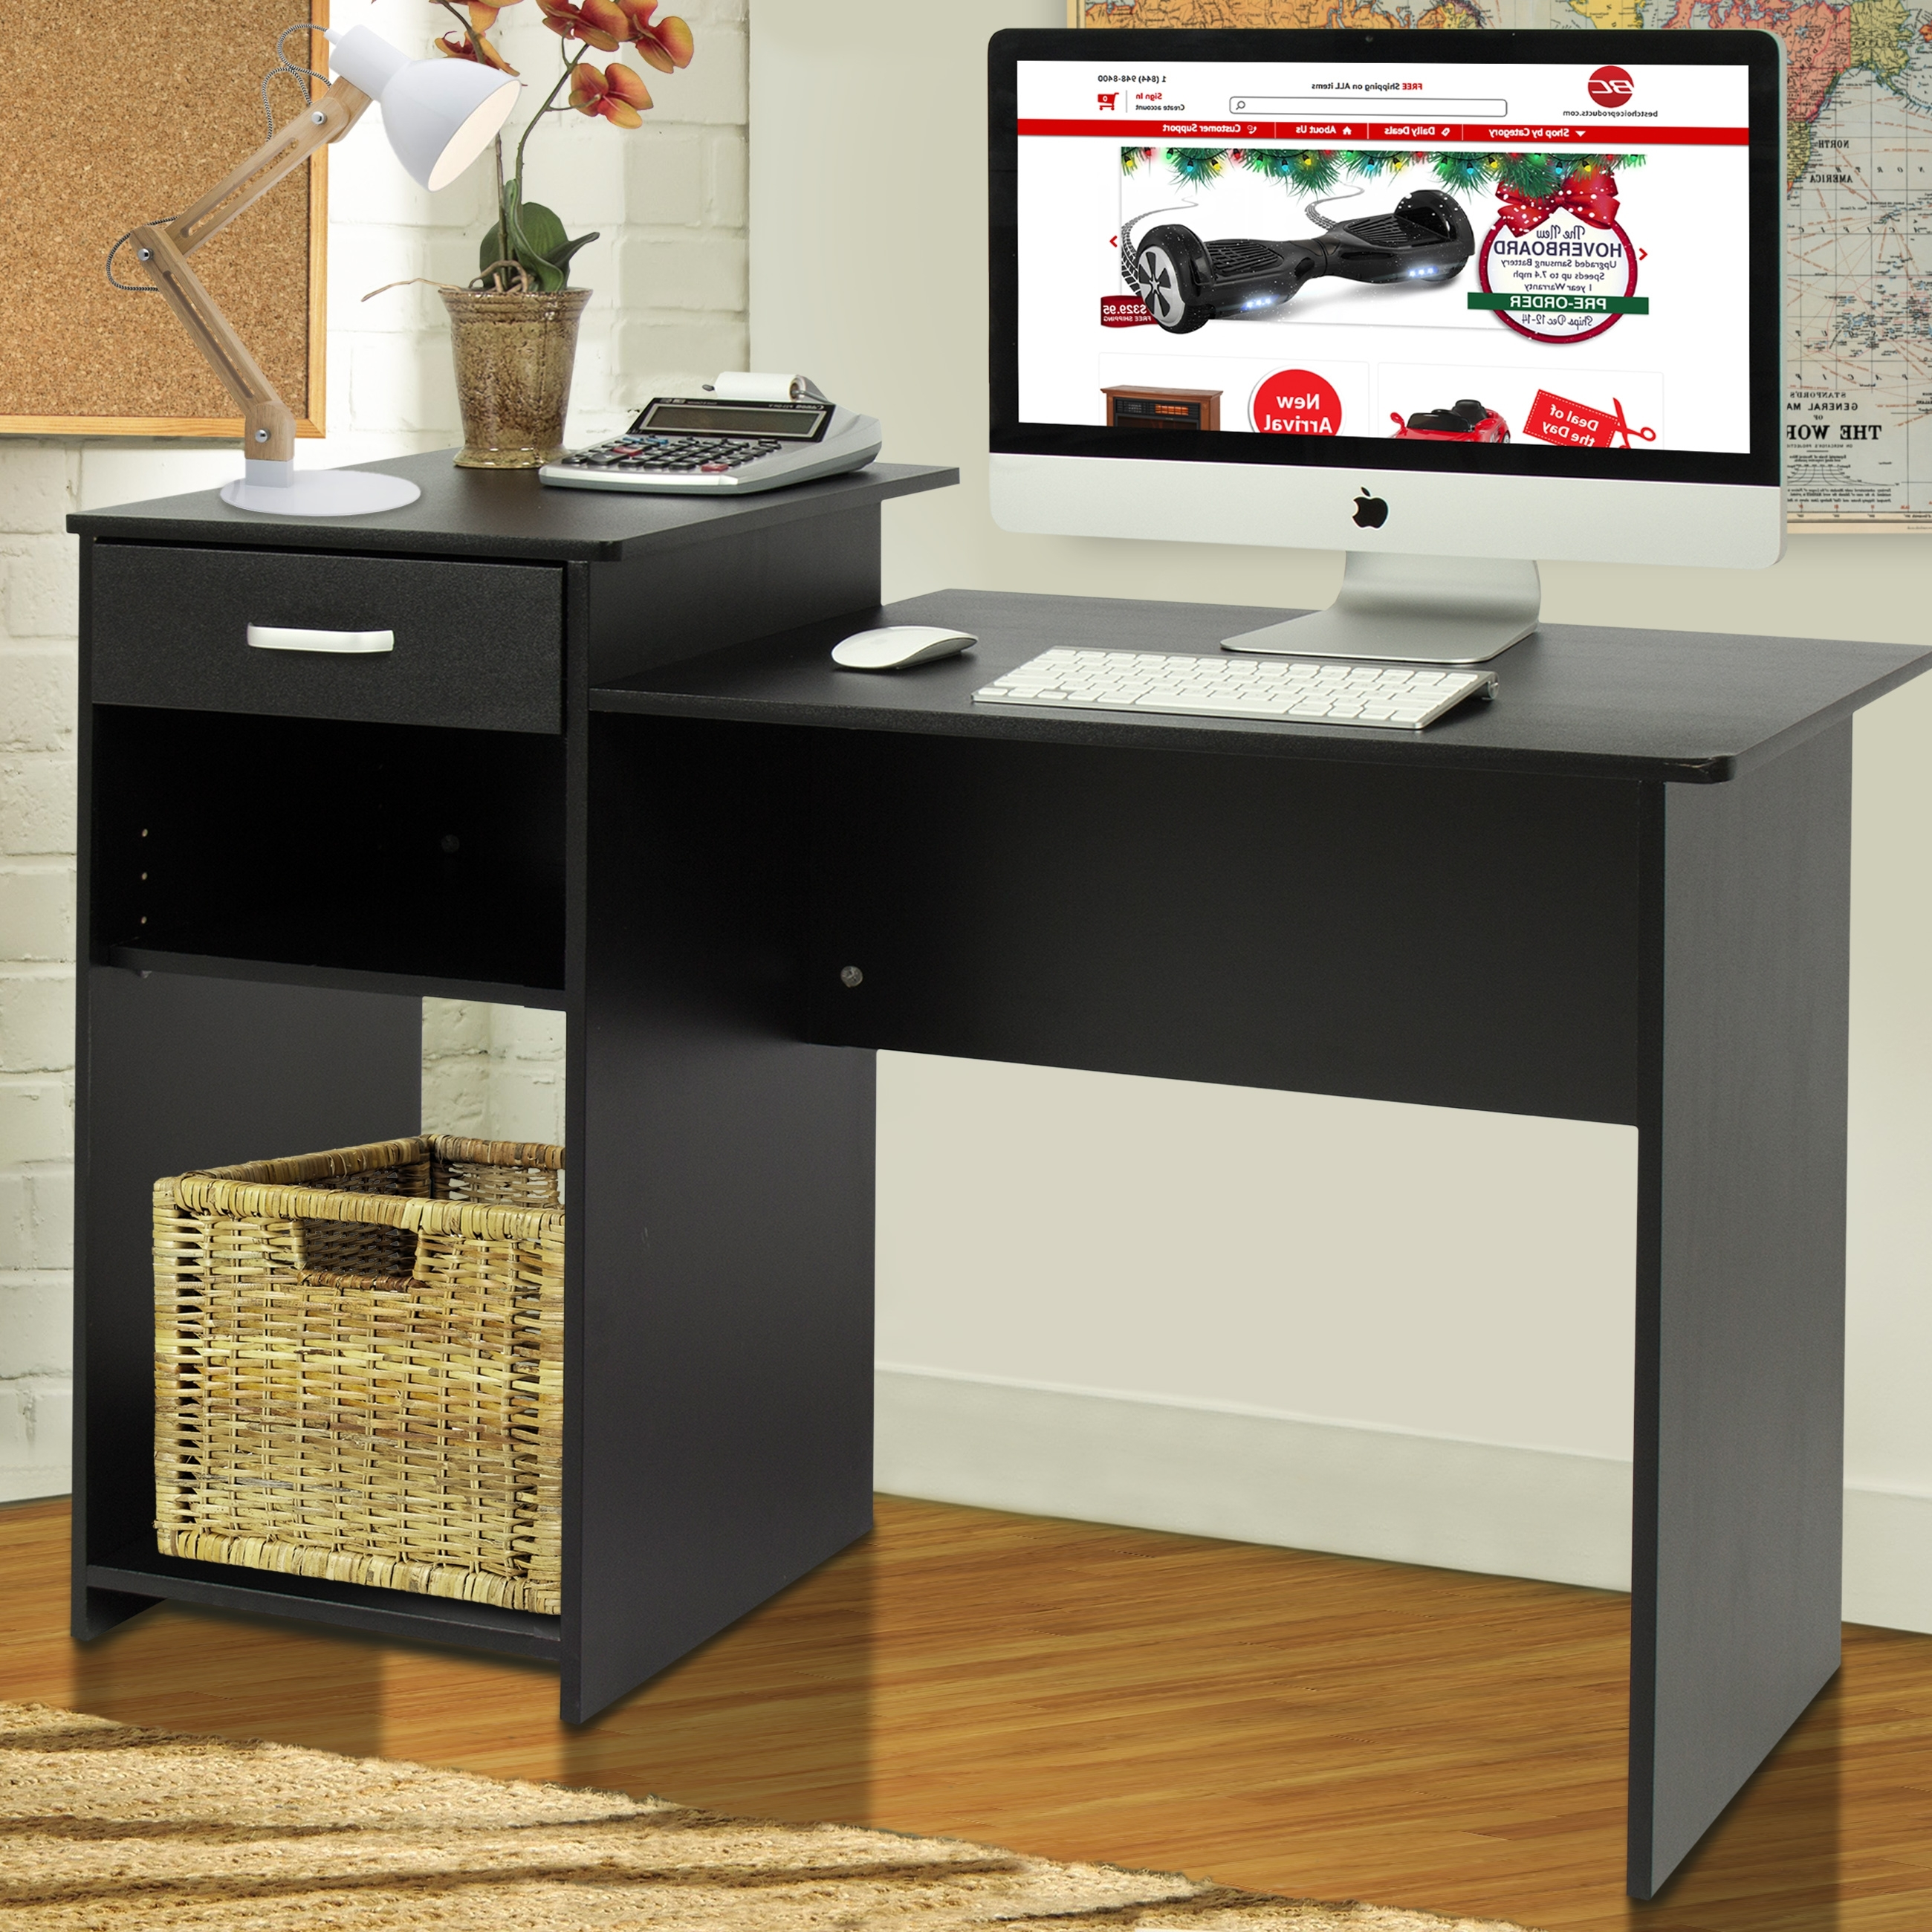 https://www.metafusiondesign.com/wp-content/uploads/2018/04/bcp-student-computer-desk-home-office-wood-laptop-table-regarding-recent-computer-desks-for-home.jpg